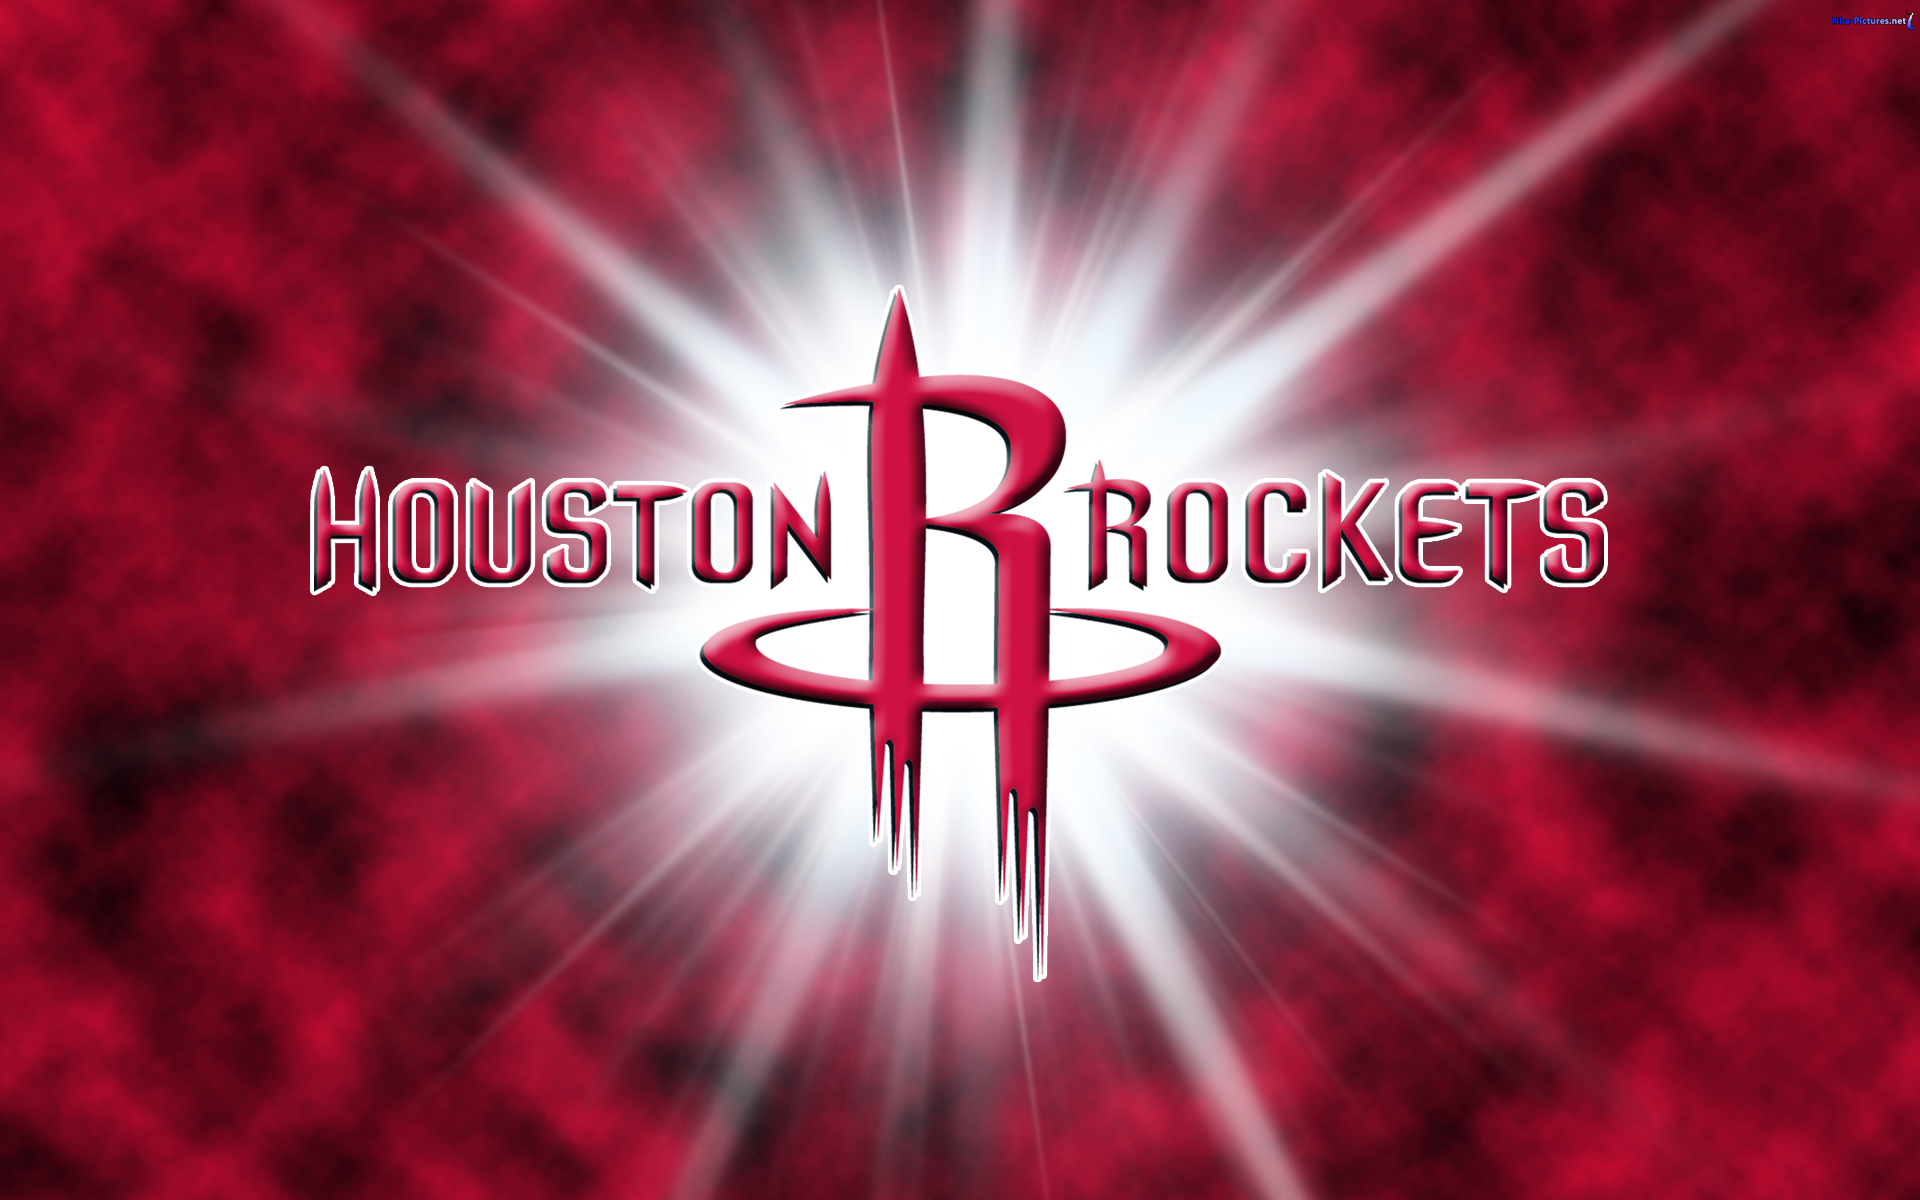 houston rockets wallpaper imagenes